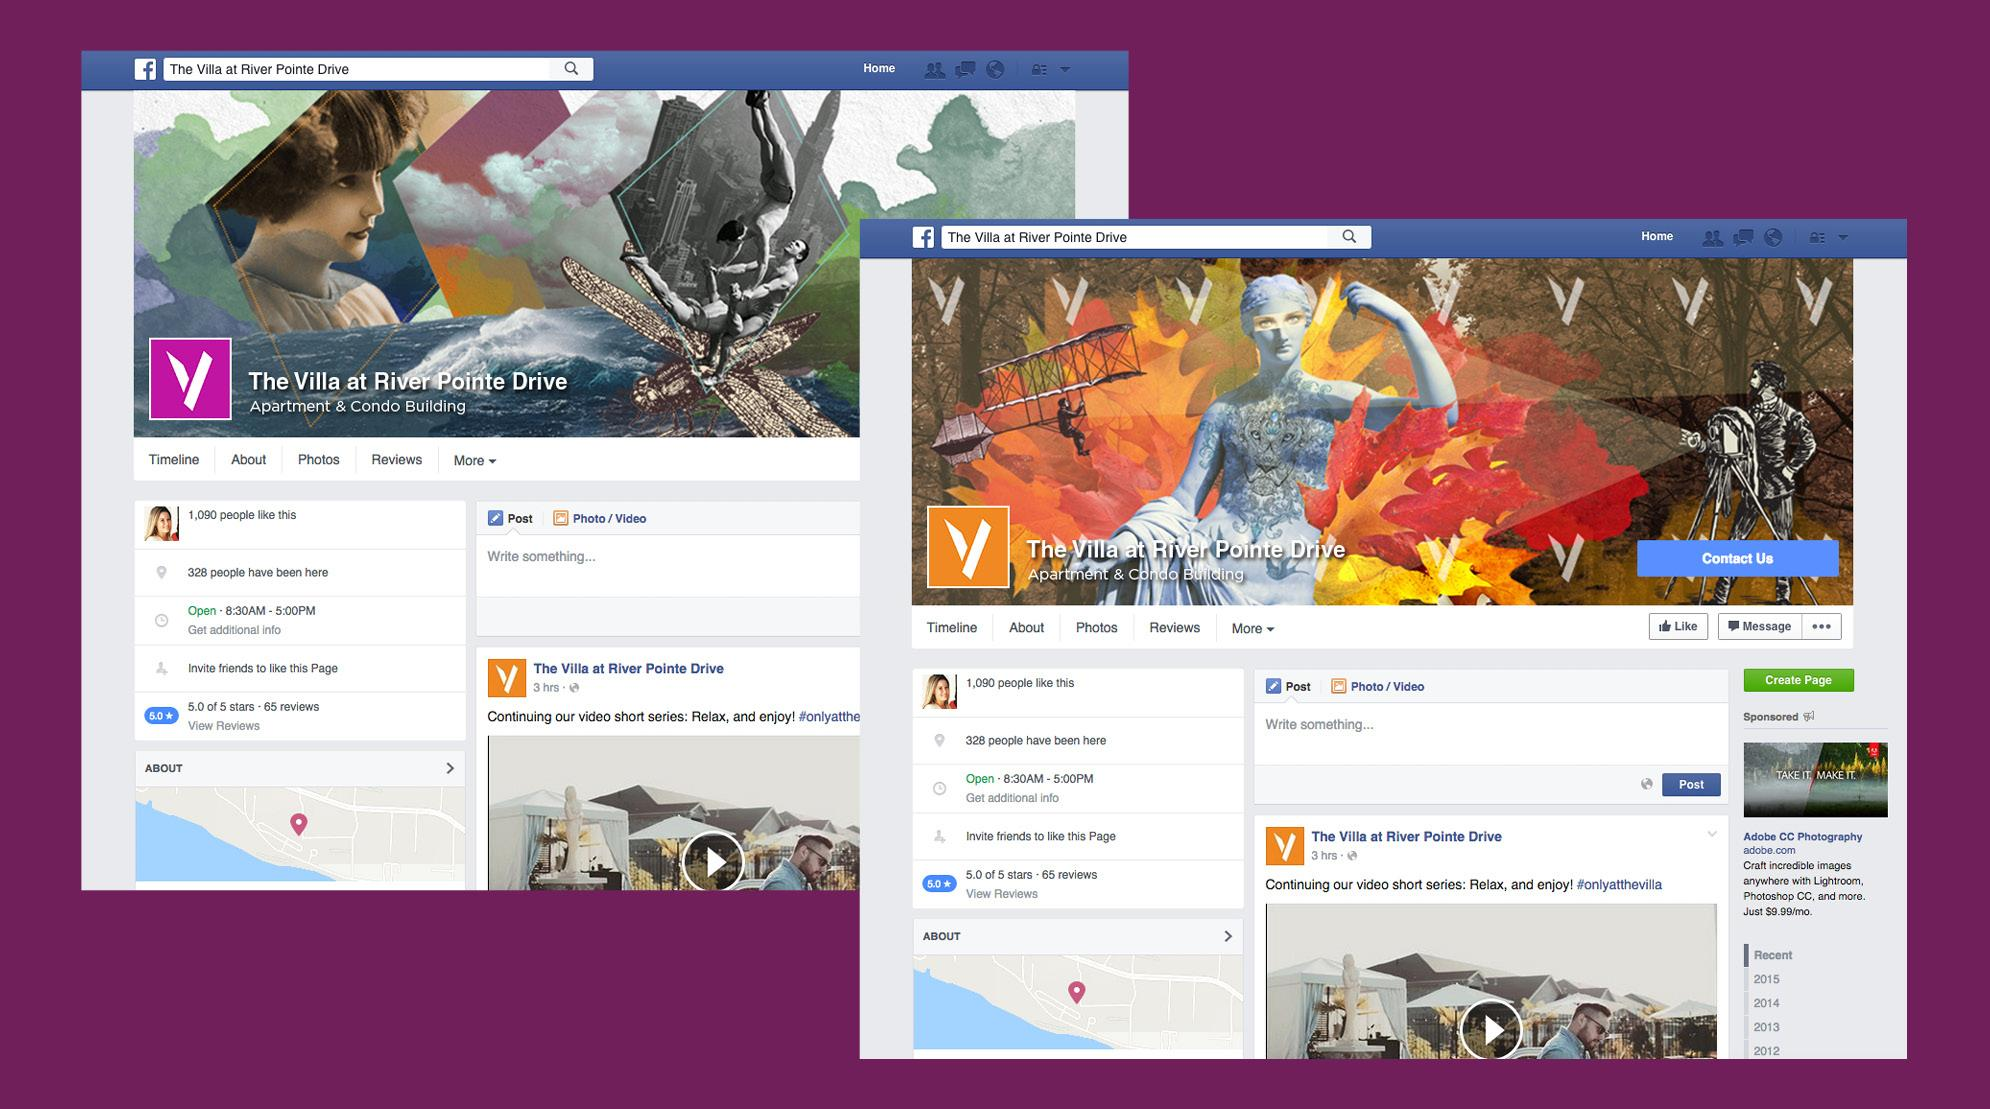 The Villa Social Media  - Facebook Page Screenshots